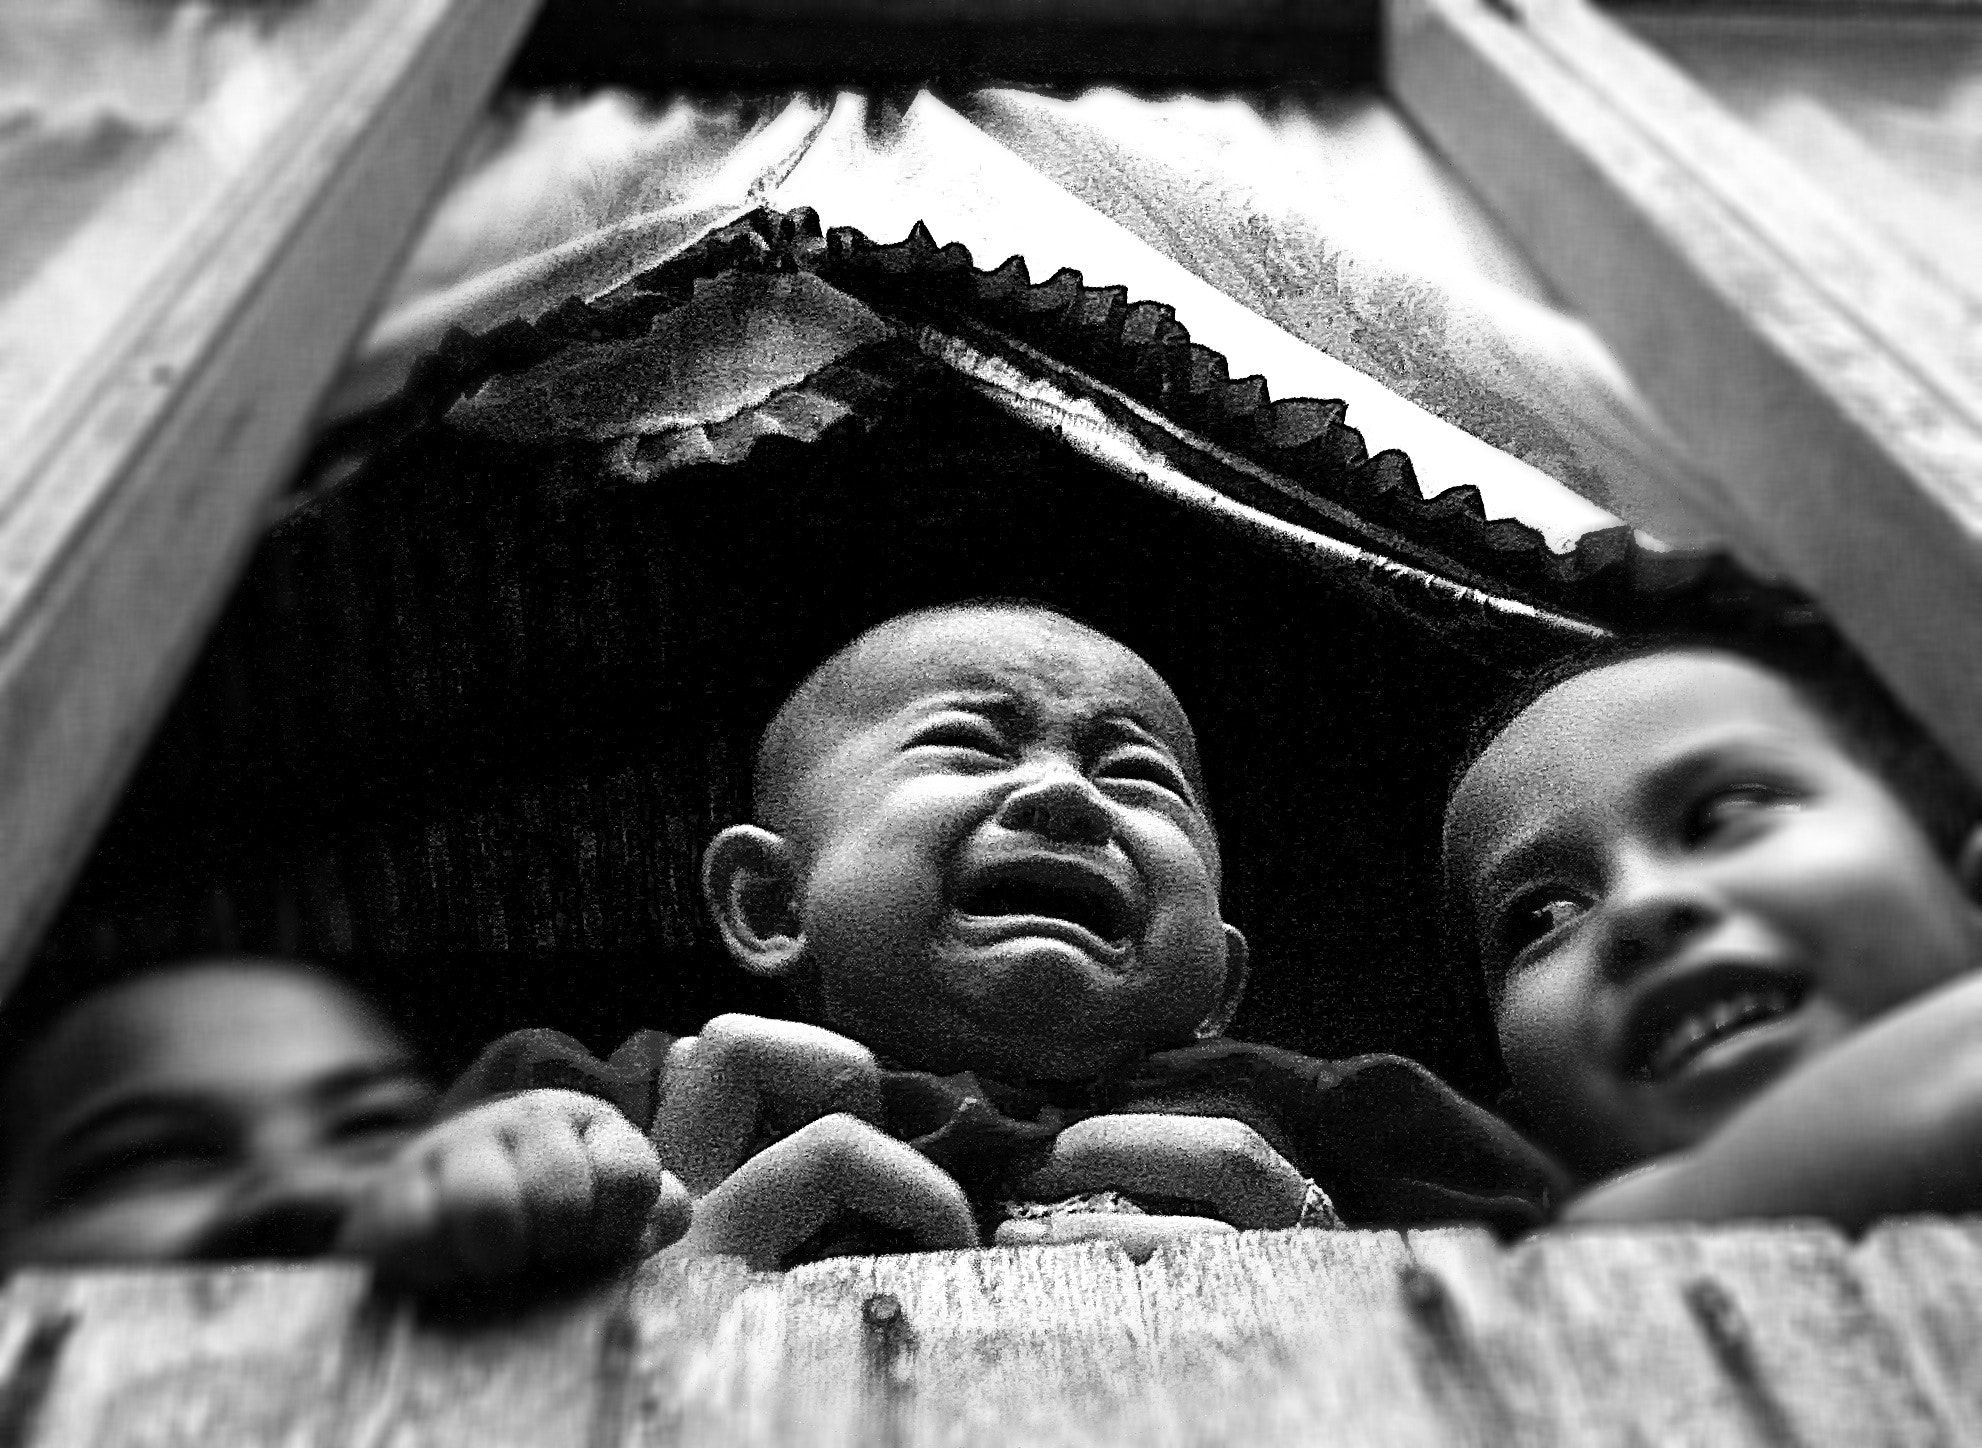 Photograph Crying iPhone by Zulkifle Che Abdullah on 500px